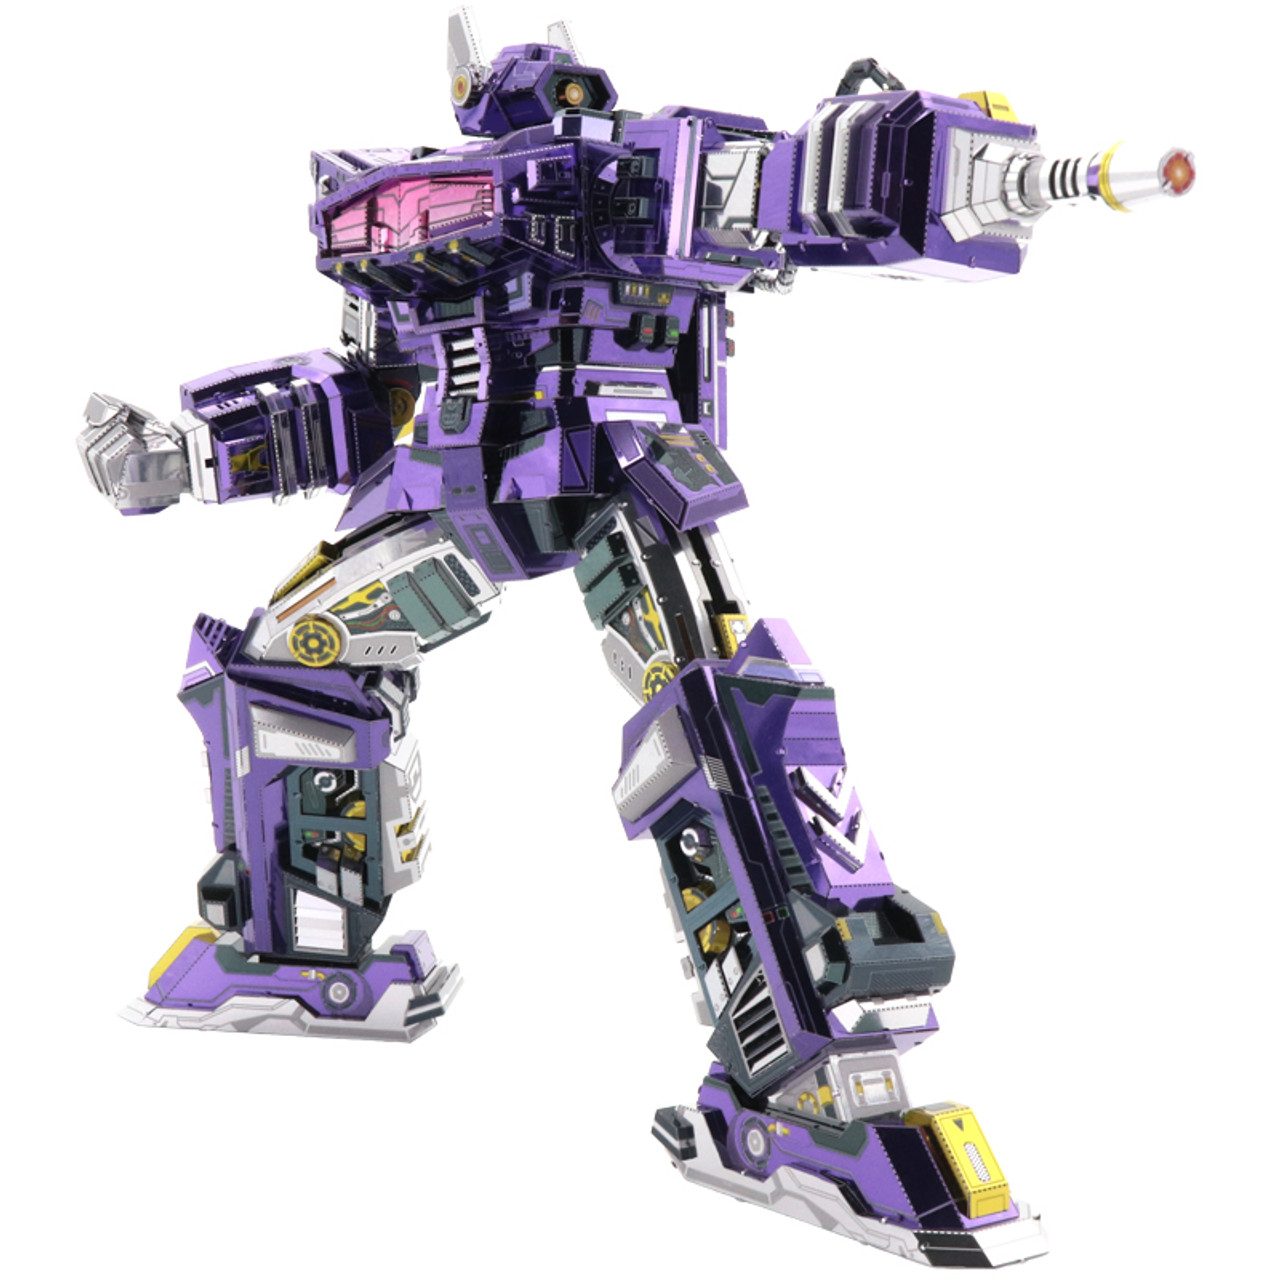 Shockwave G1 - Transformers DIY Metal Model Kit | MU Model